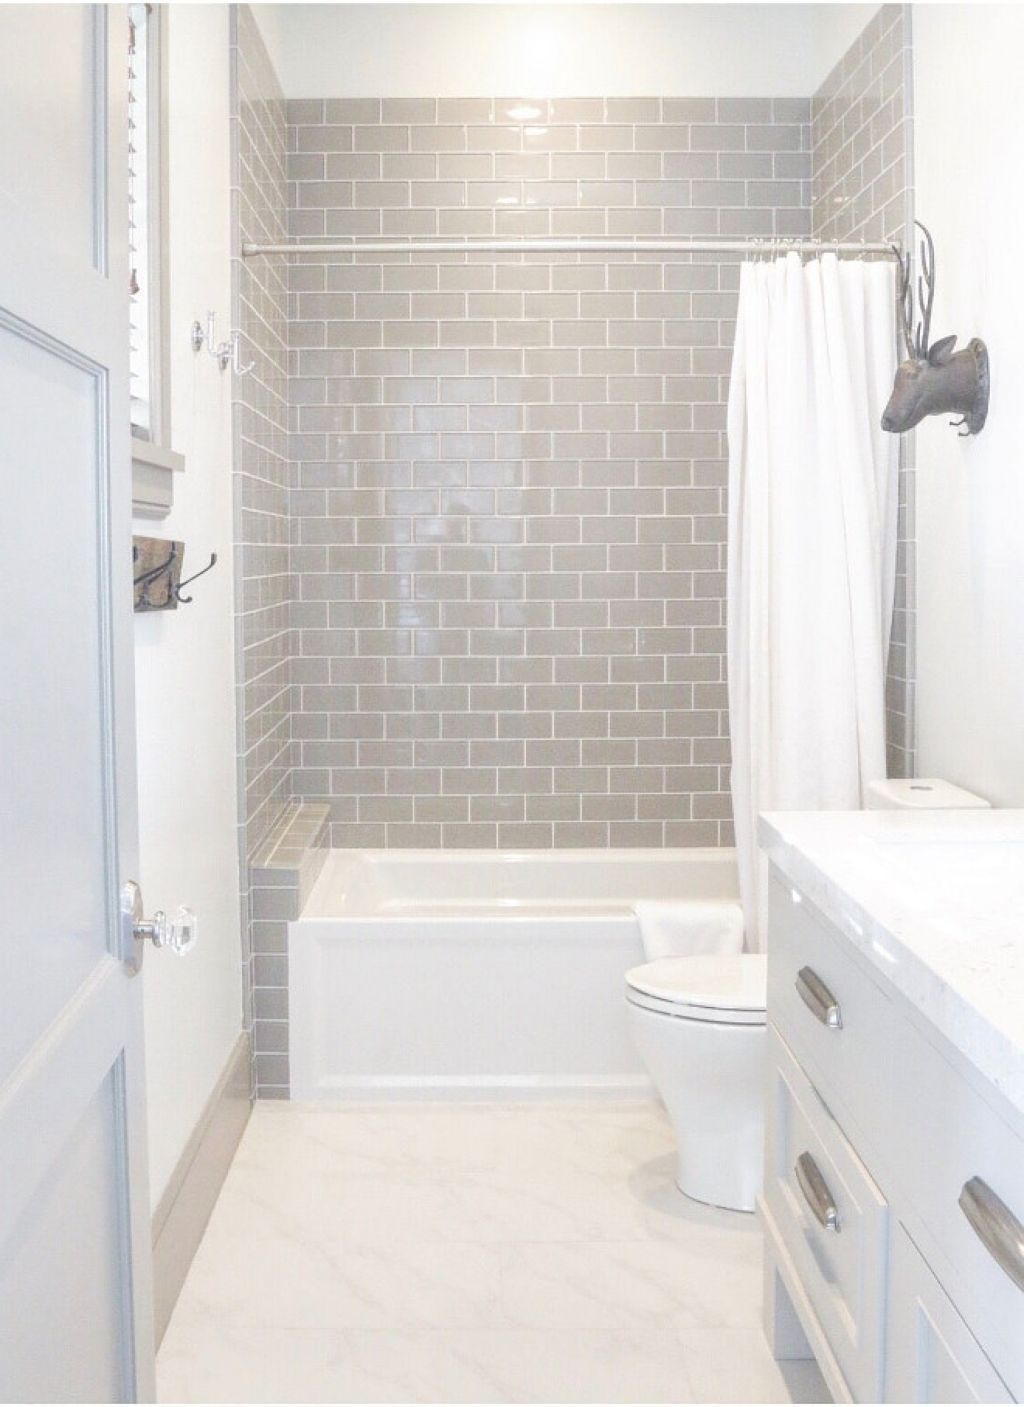 Awesome 60 Awesome Small Bathroom Remodel Ideas https://homeideas.co ...